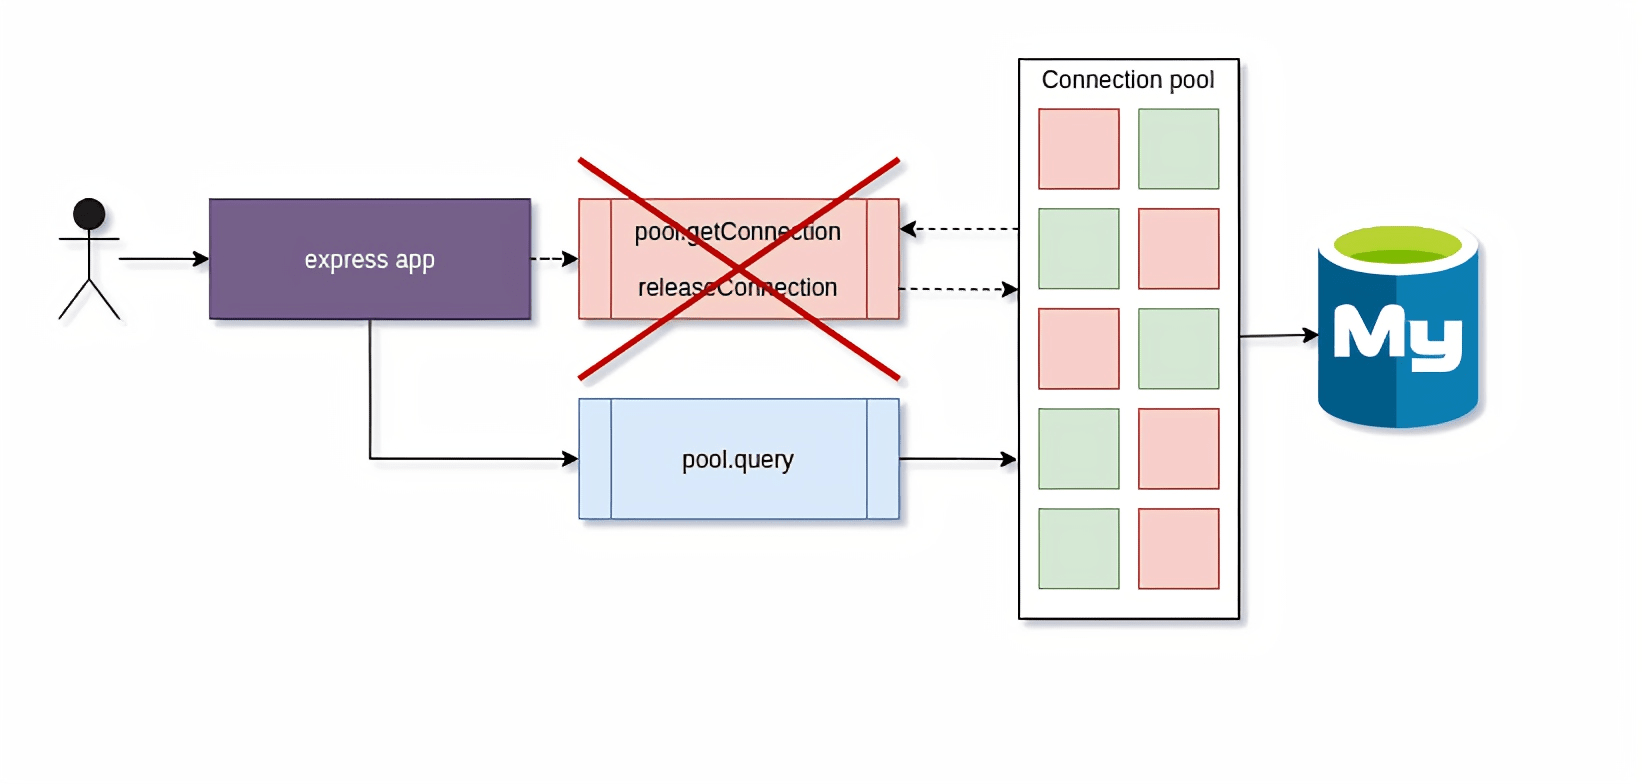 Overloaded connection pool with bad MySQL driver implementation